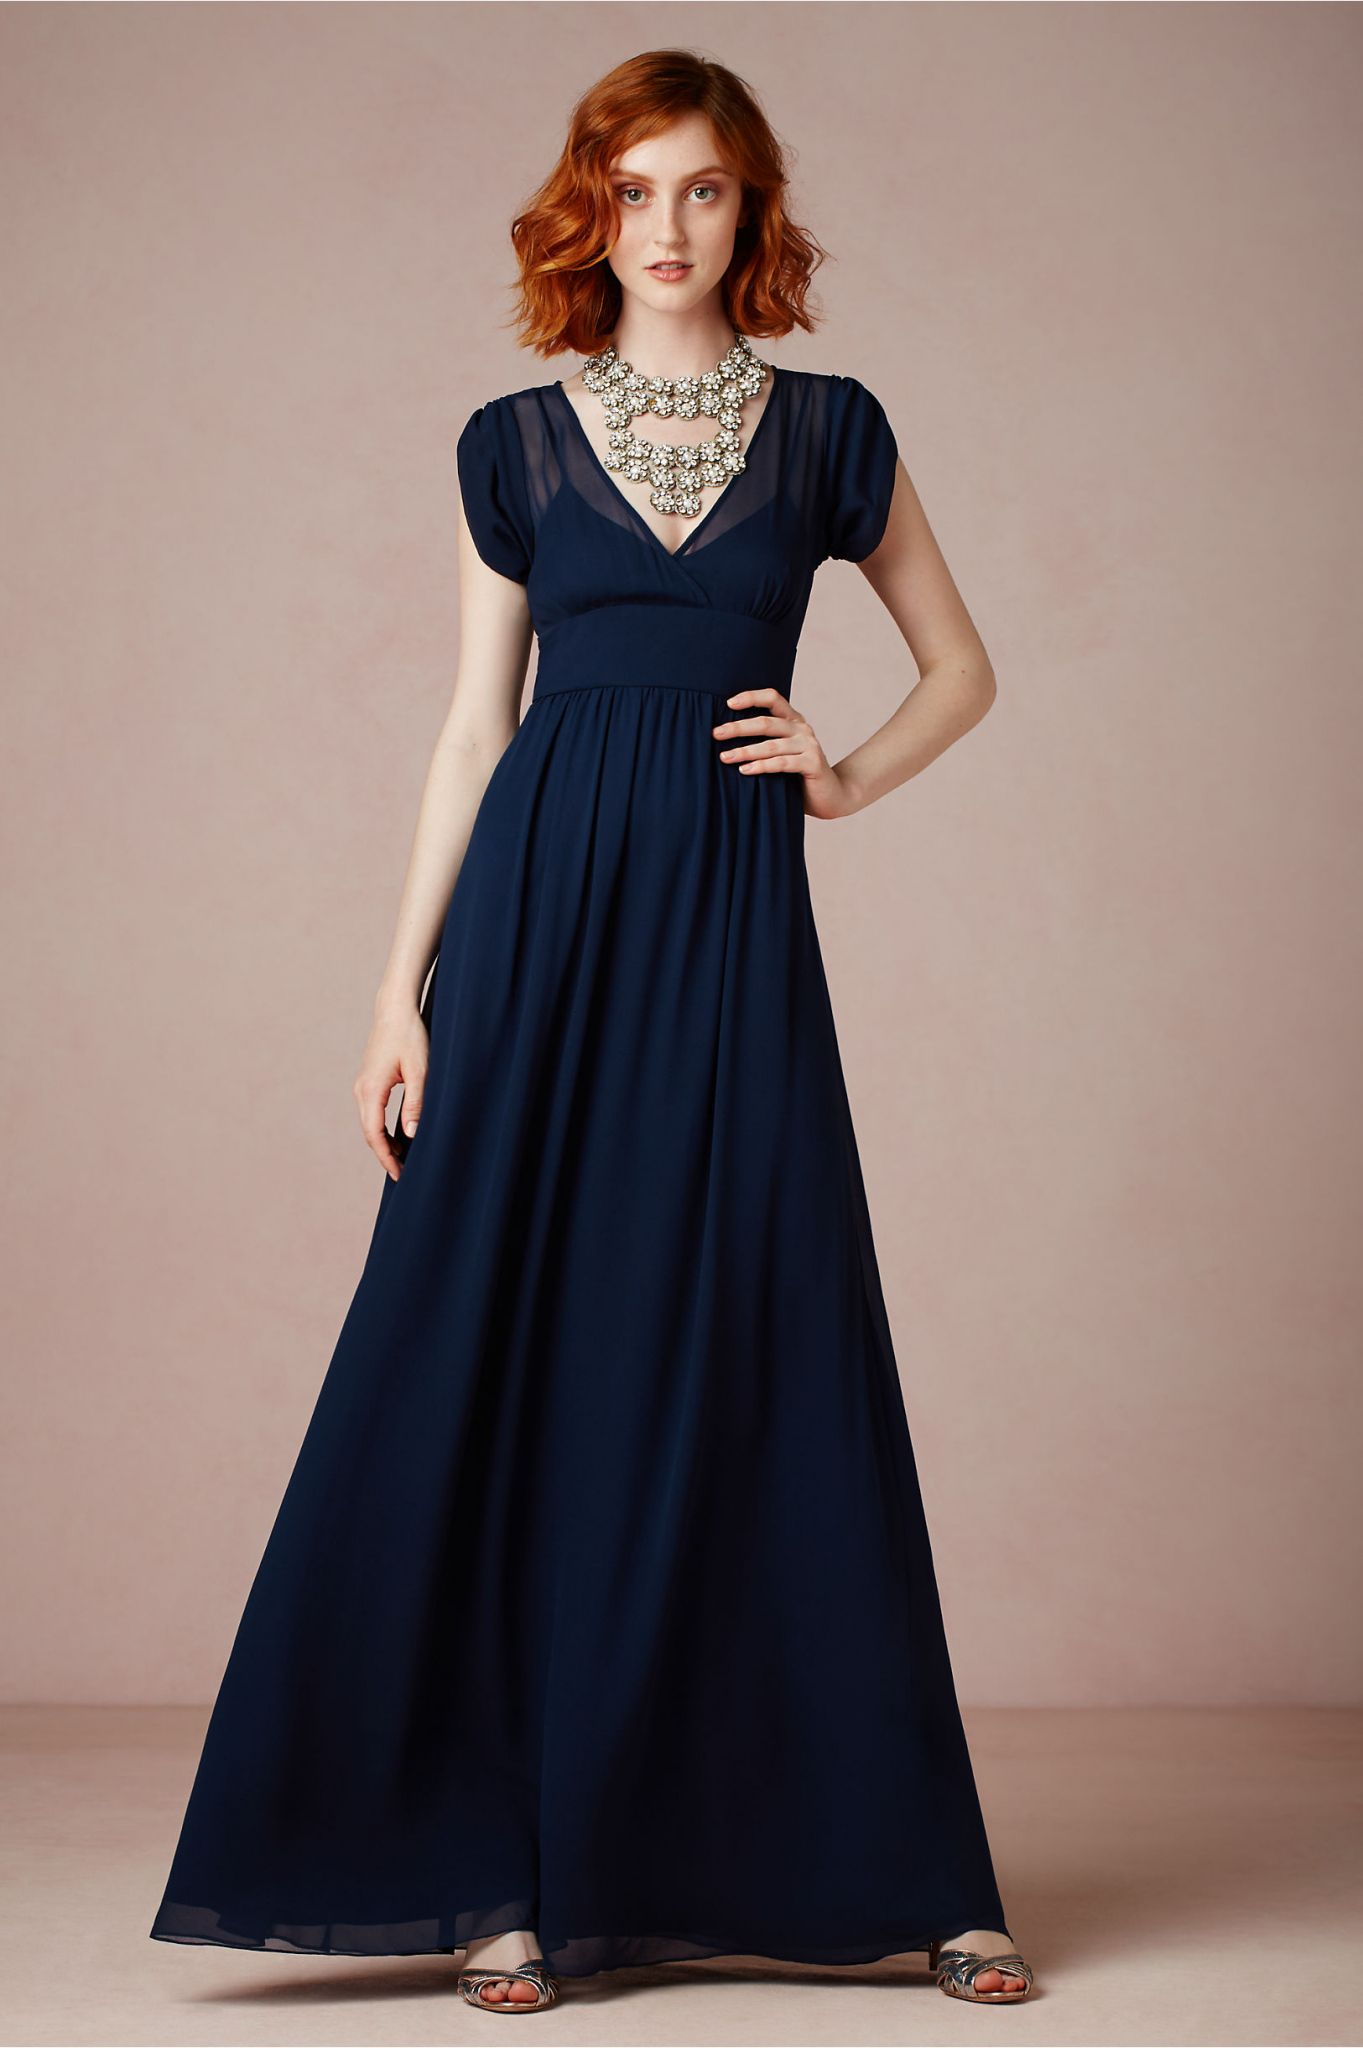 91a775d4476 Maxi Dress for Wedding Reception - Best Dresses for Wedding Check more at  http